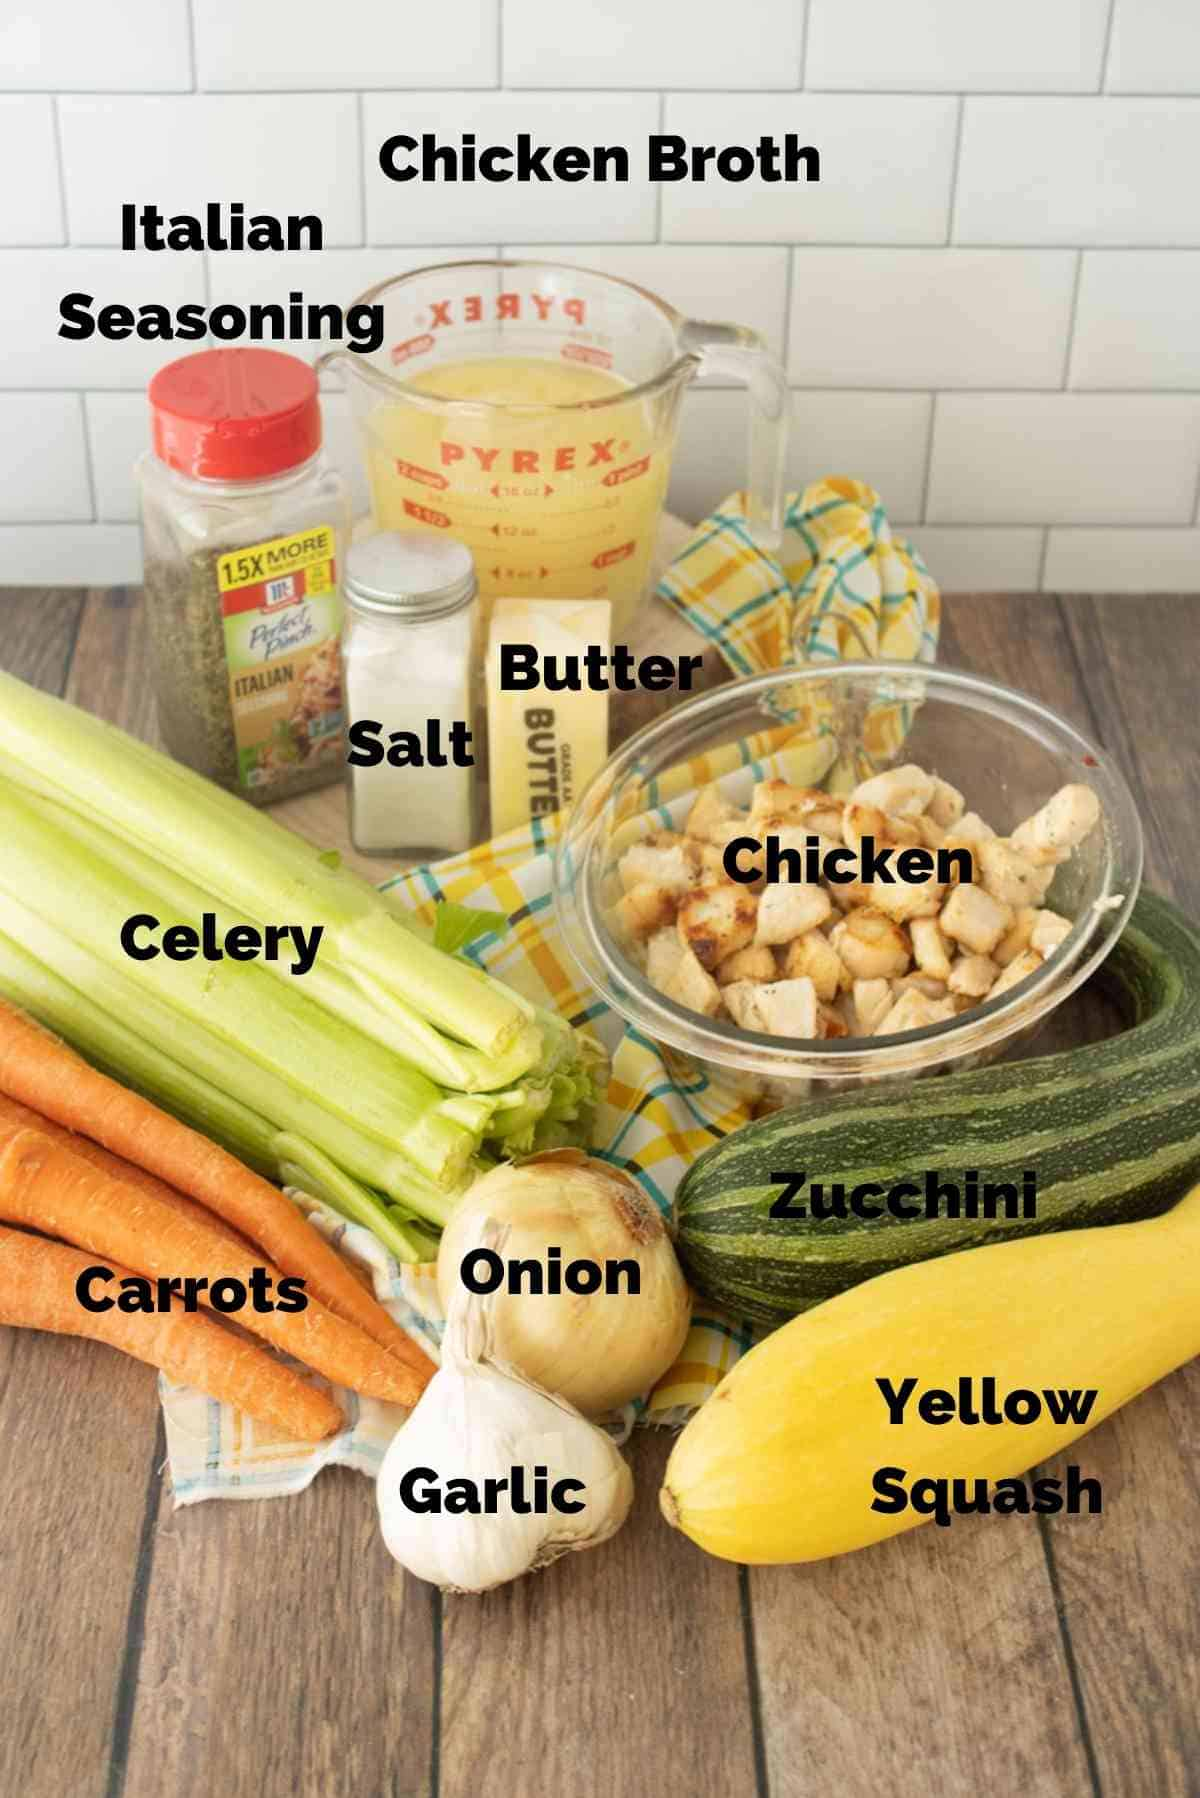 All the fresh veggies and other ingredients you'll need to make this easy recipe!